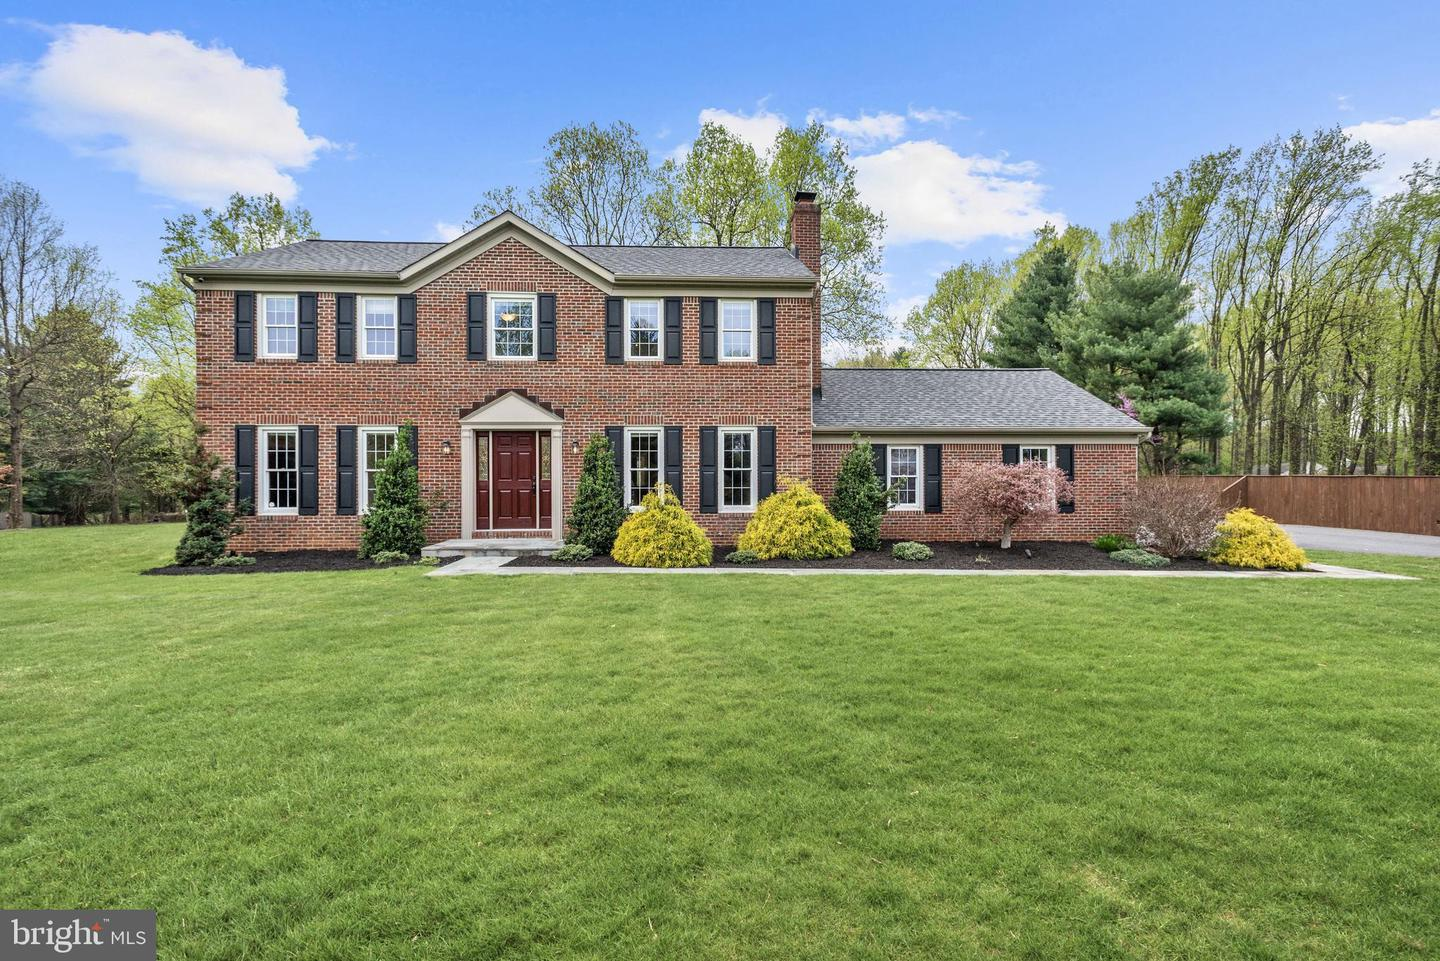 7516 Flamewood Drive   - Clarksville, Maryland 21029